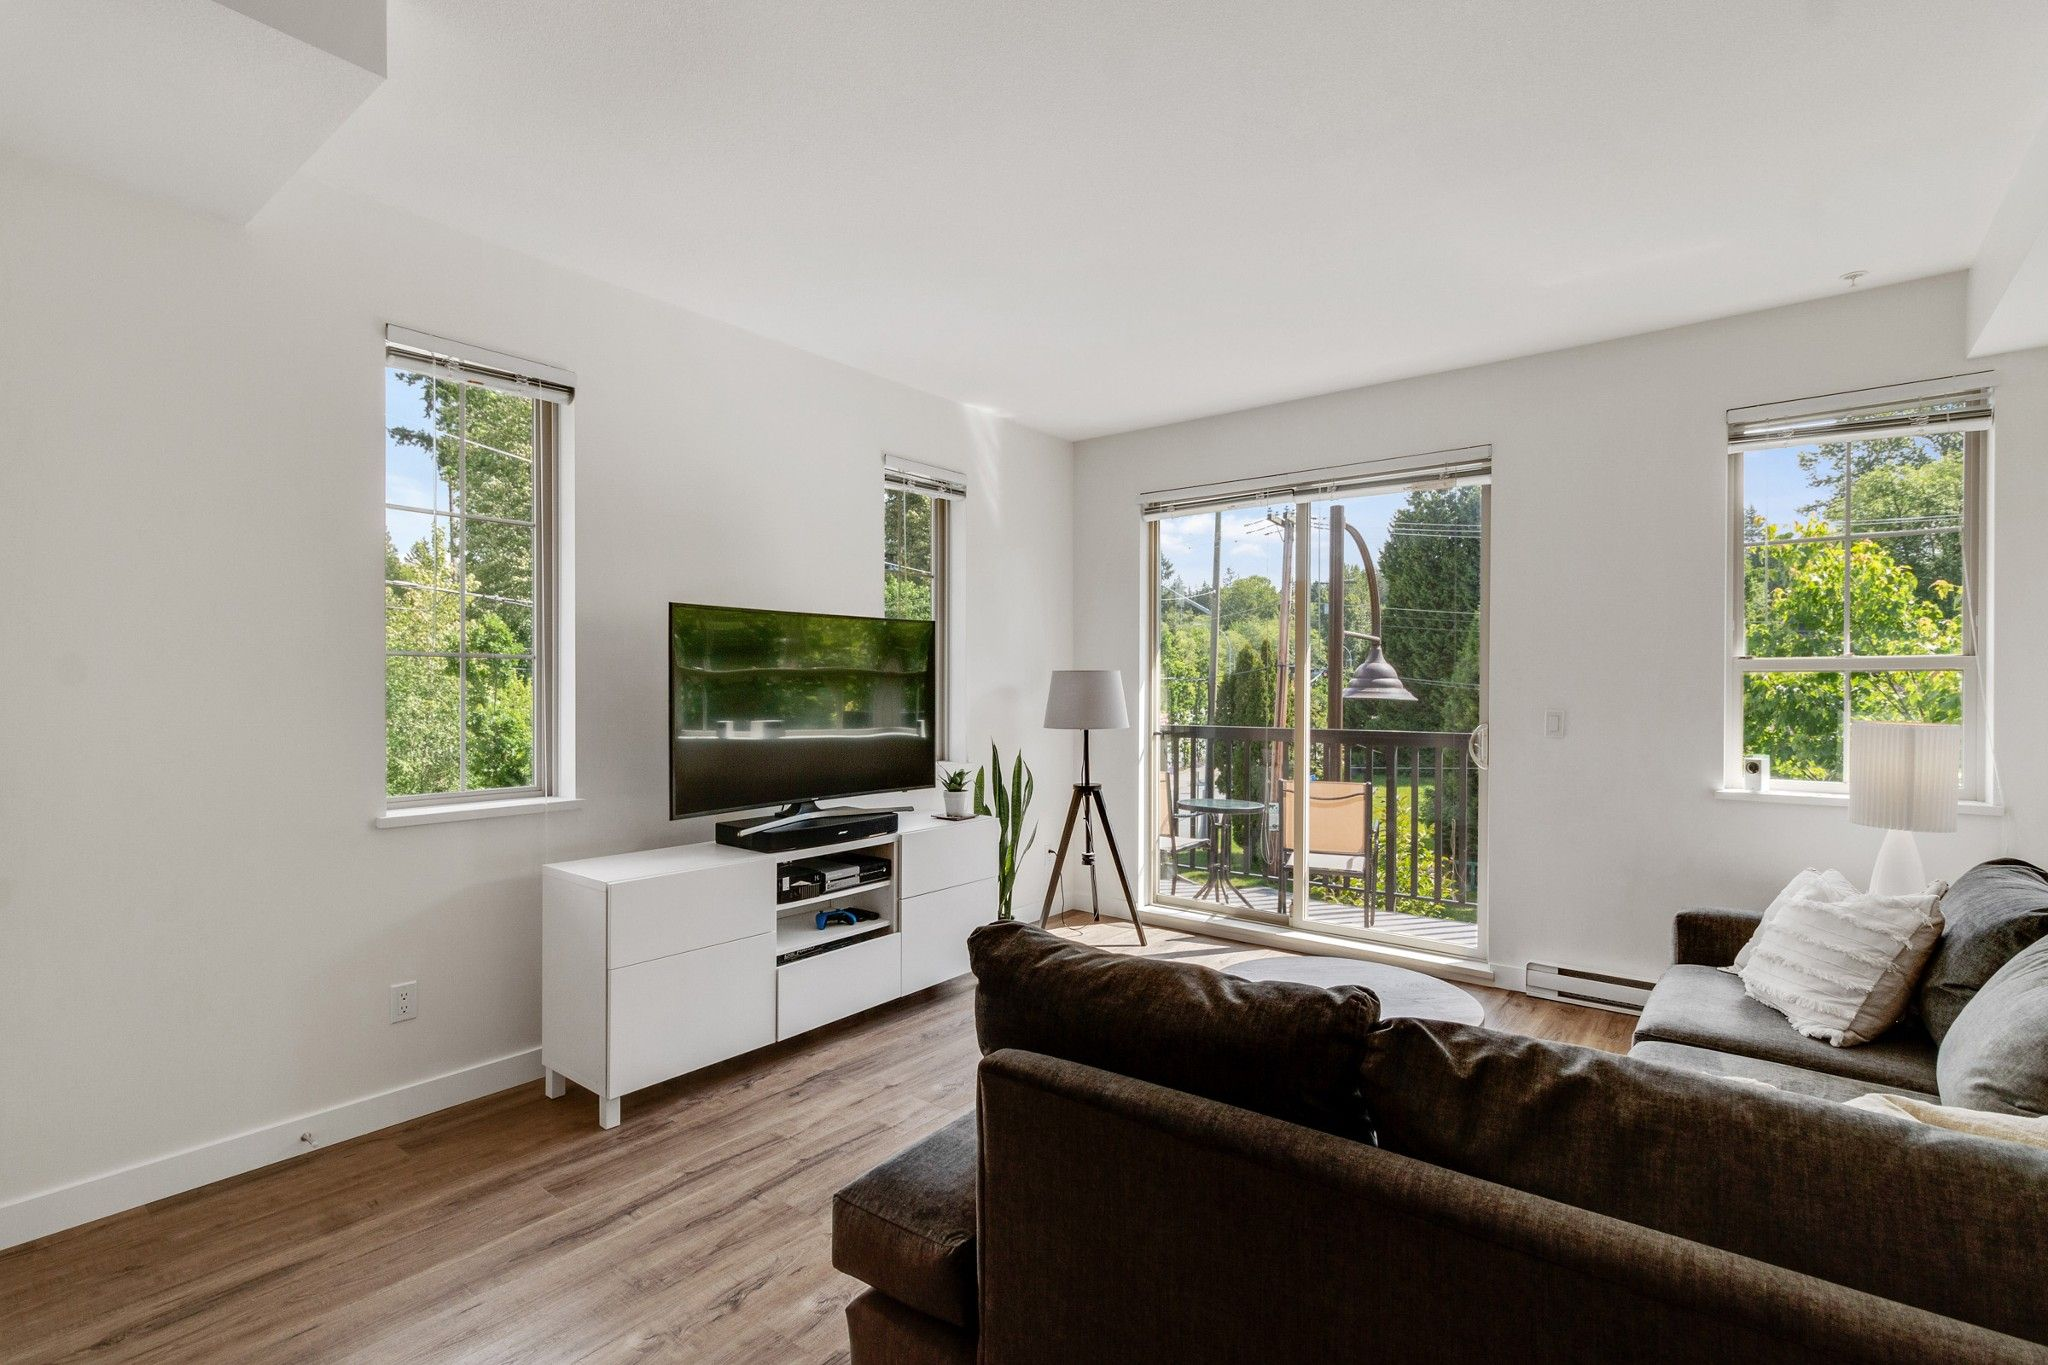 """Main Photo: 18 433 SEYMOUR RIVER Place in North Vancouver: Seymour NV Townhouse for sale in """"MAPLEWOOD"""" : MLS®# R2585787"""